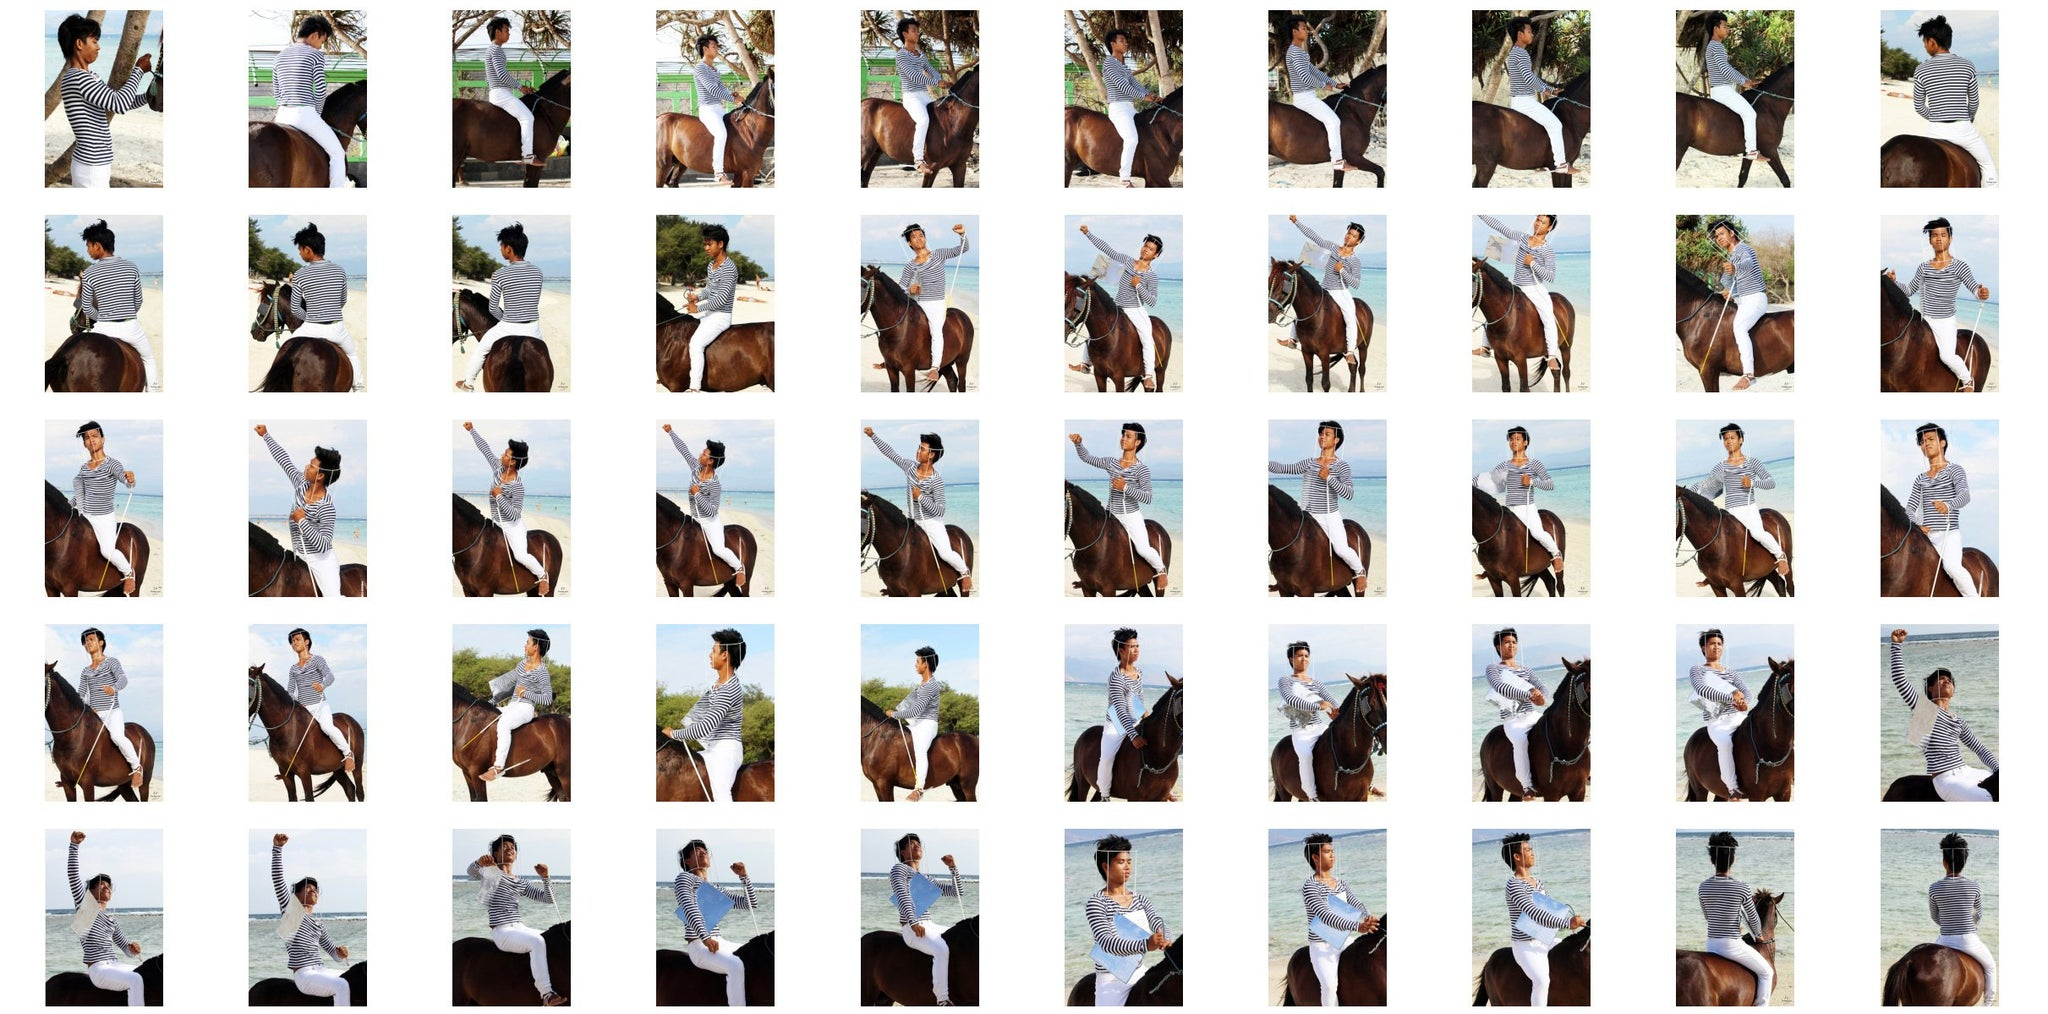 Intan in Striped Shirt, Jodhpurs, Lampsheed and Drawing Pad Riding Bareback on Brown Horse, Part 1 - Riding.Vision